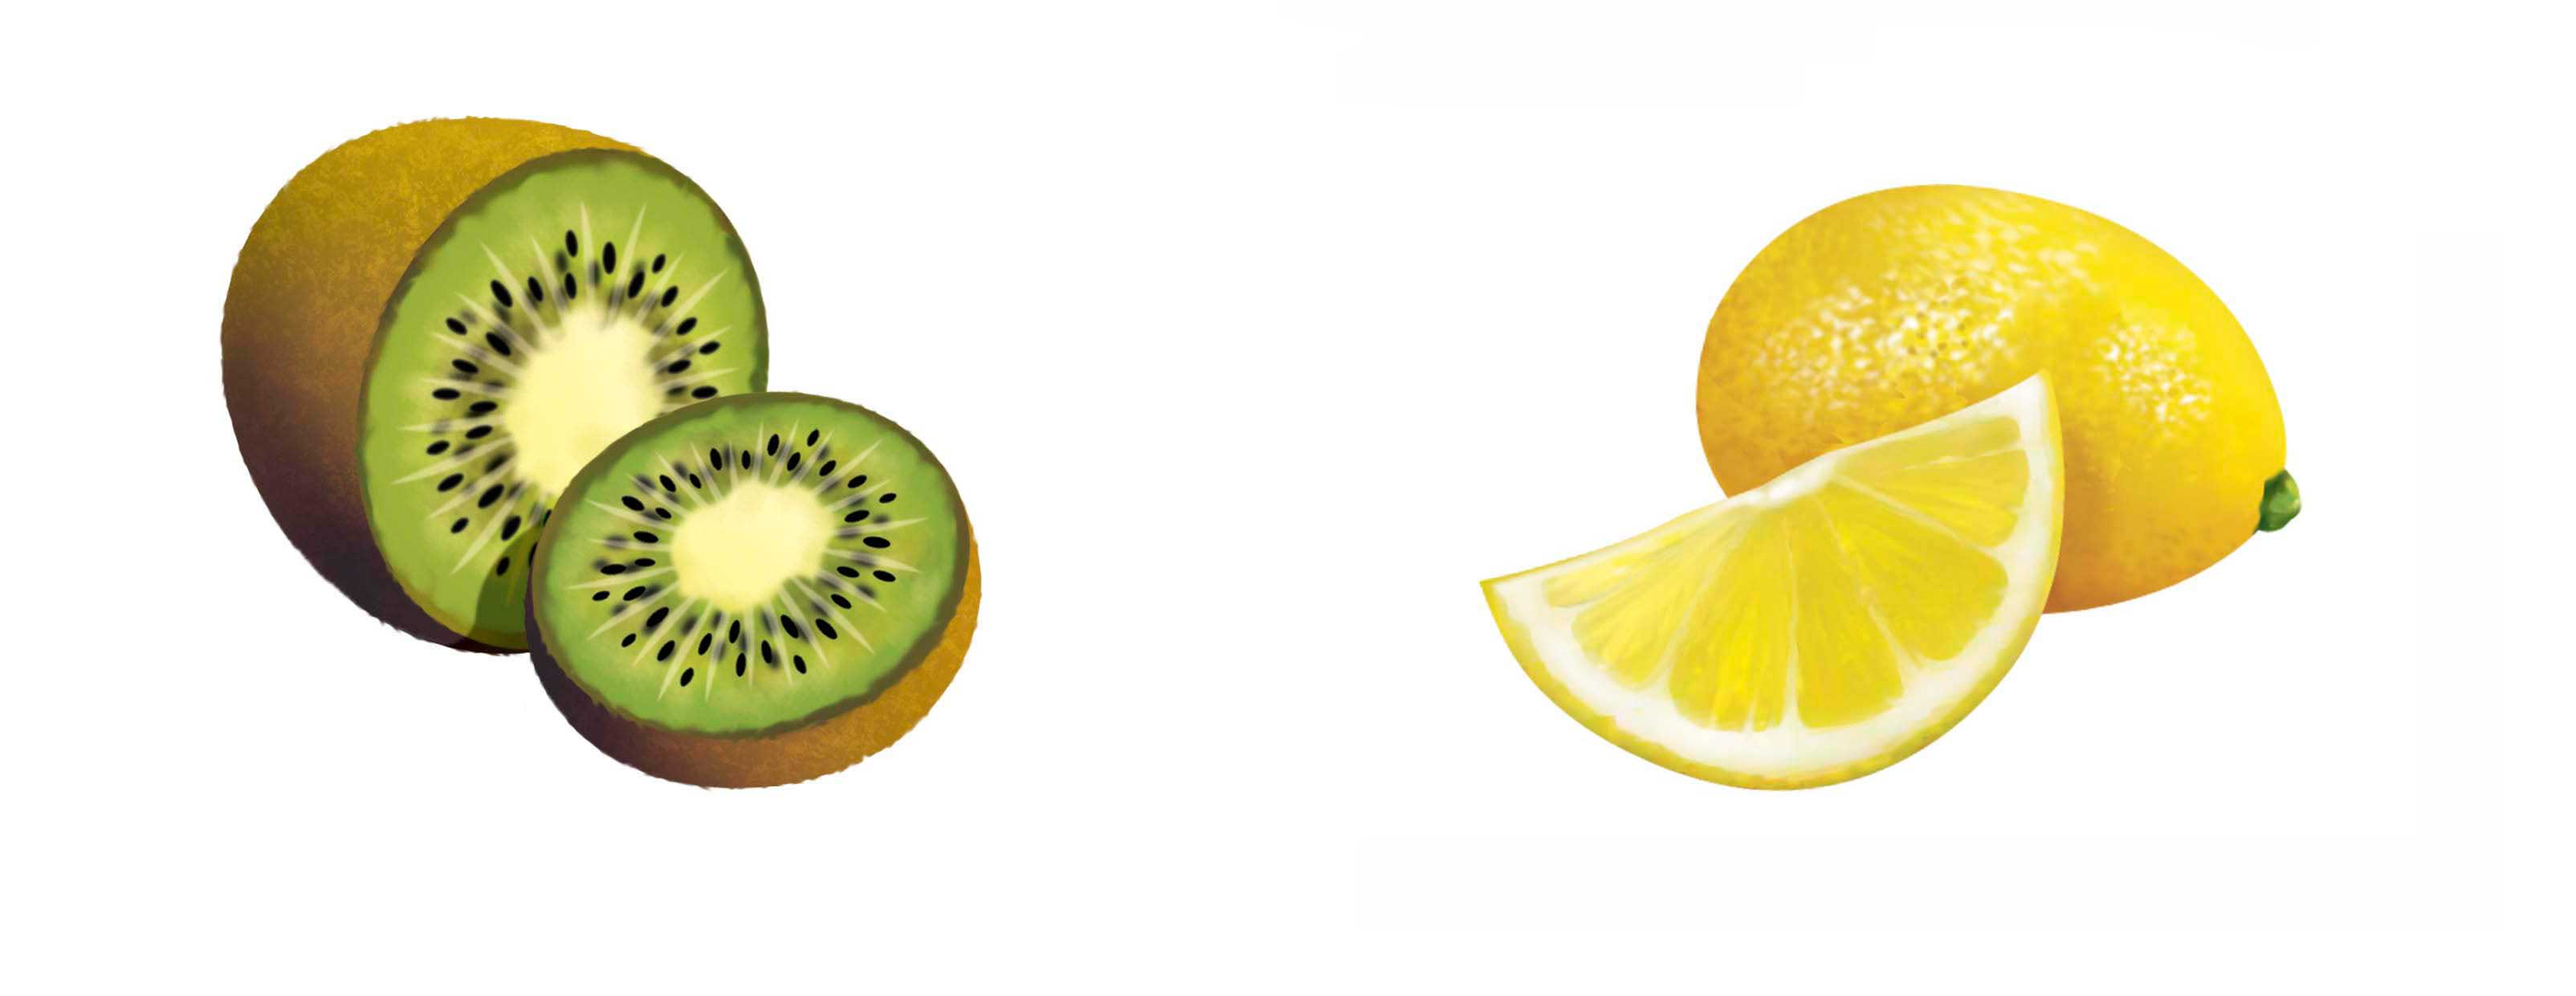 cut-kiwi-passion-fruit-slice-lemon-slice--whole-lemon-still-life